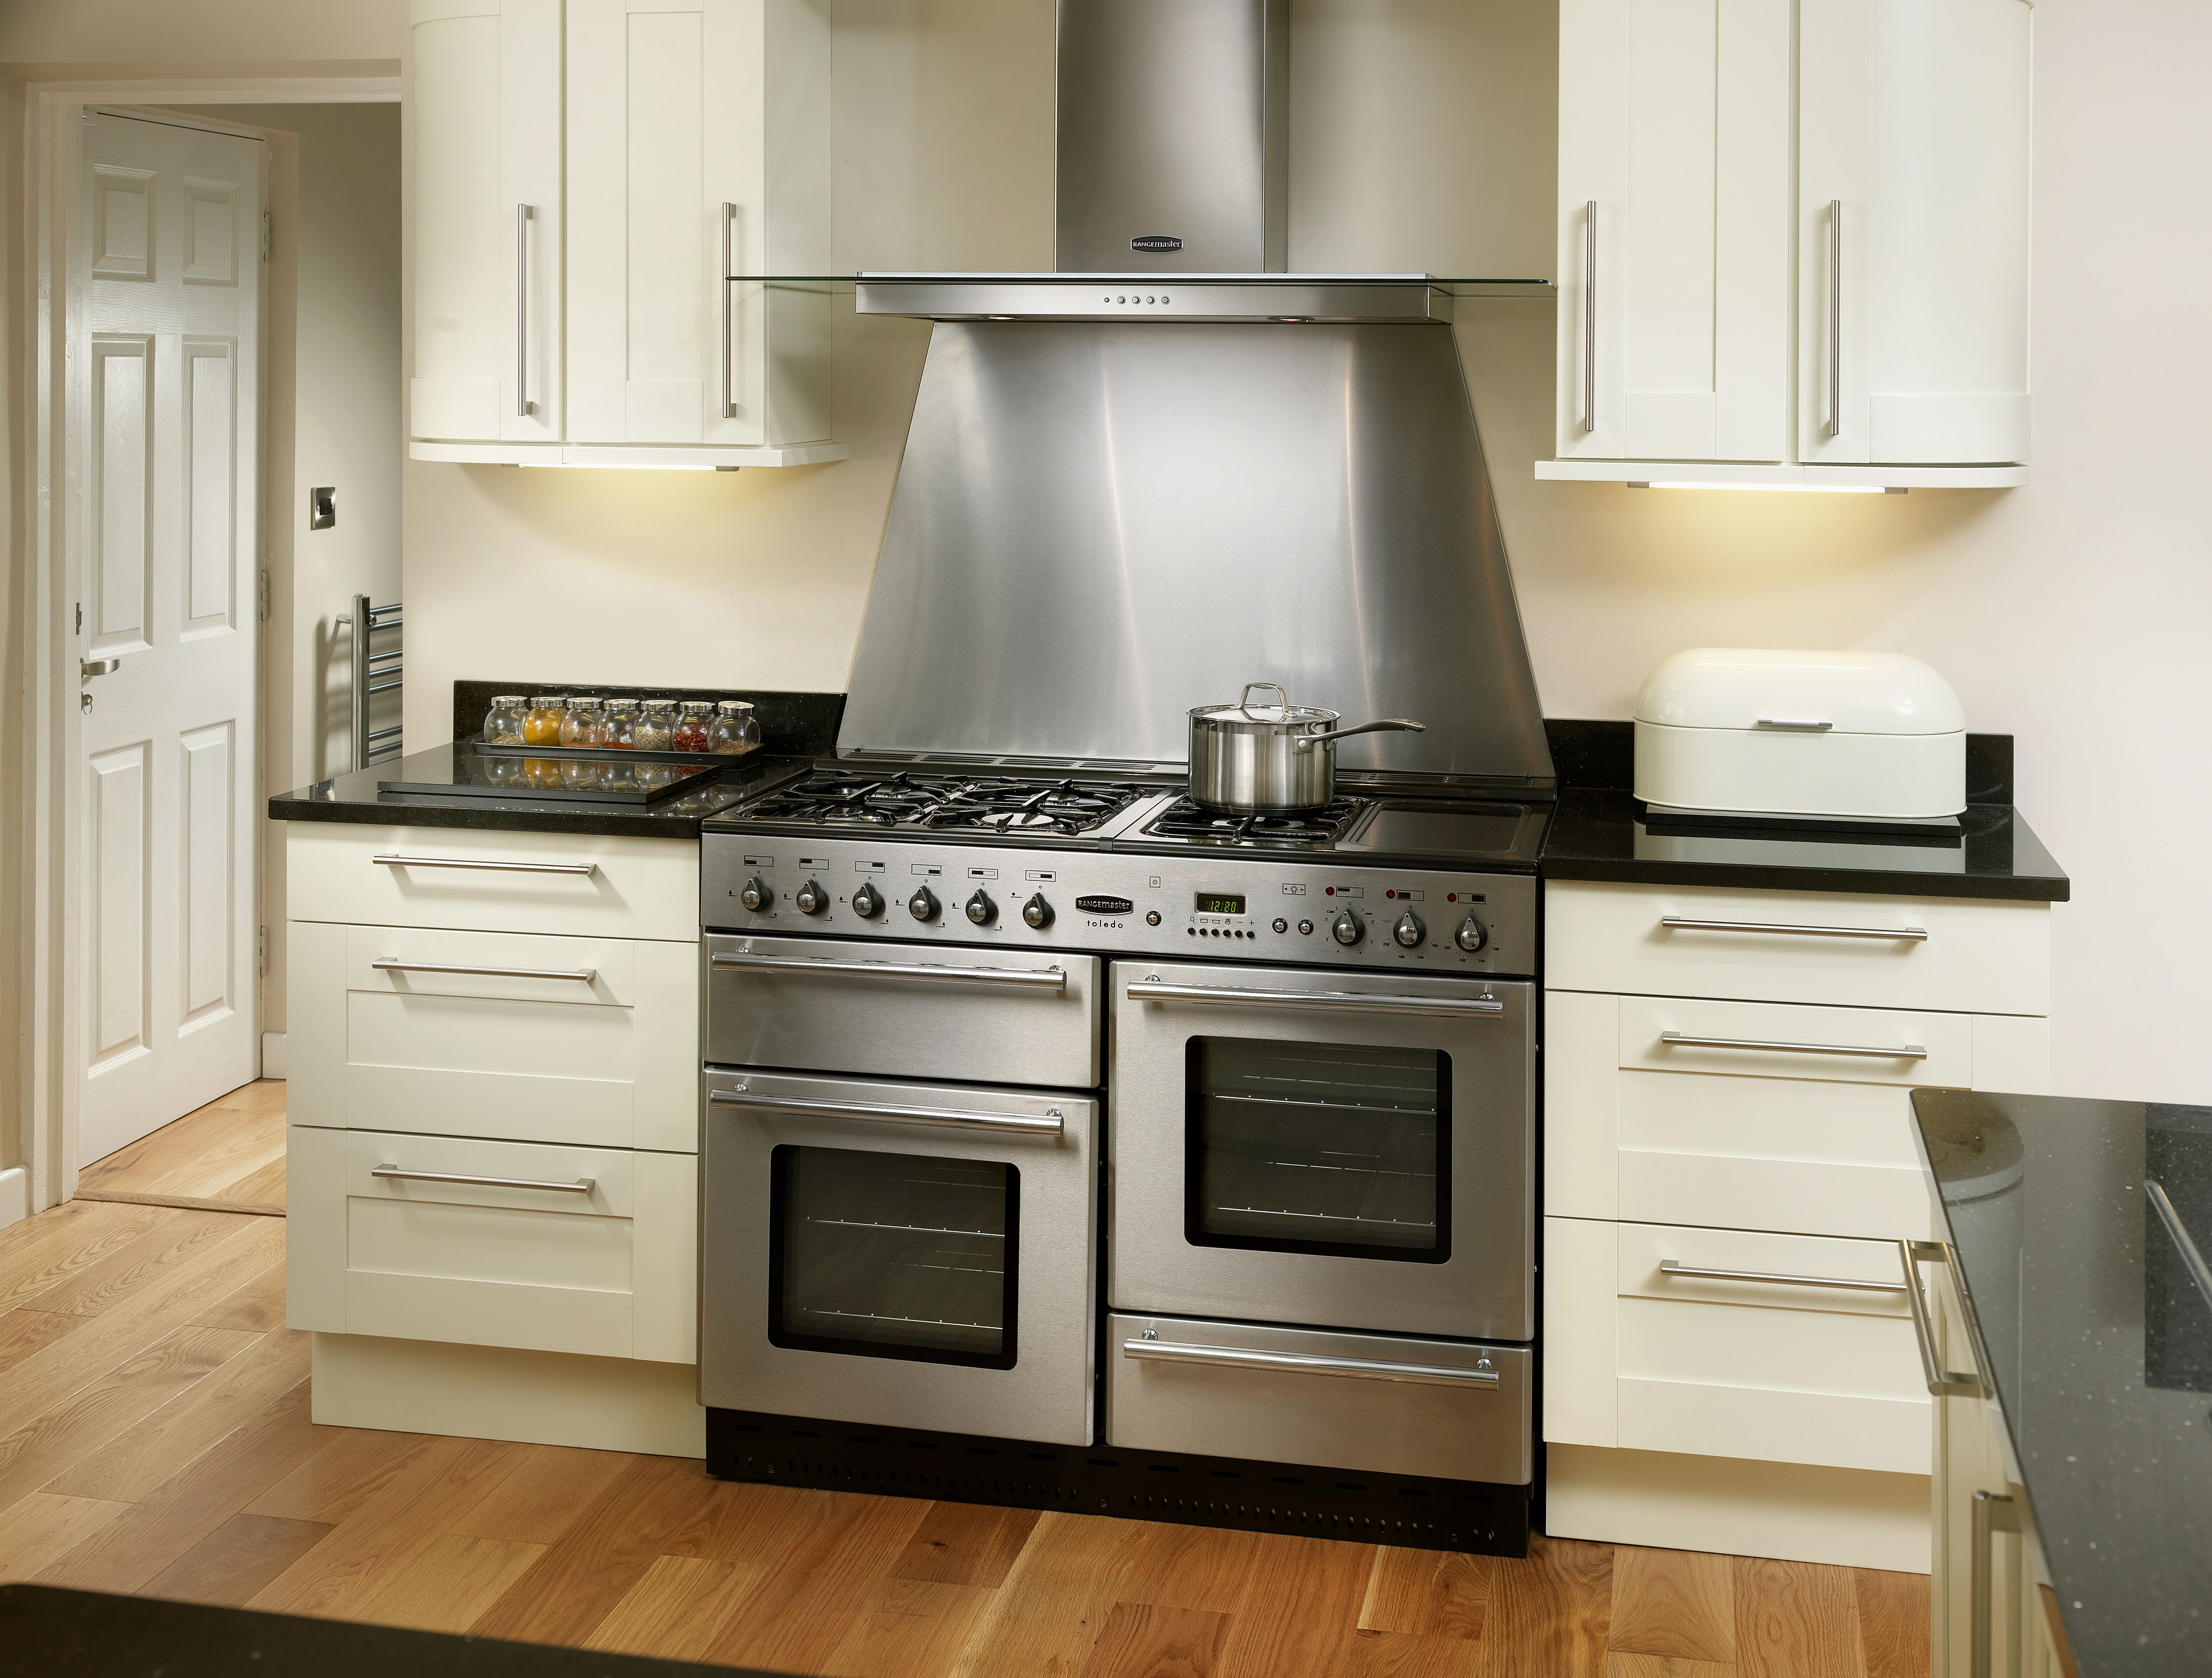 rangemaster toledo 110 range cooker with matching rangemaster toledo 110 hood and splashback